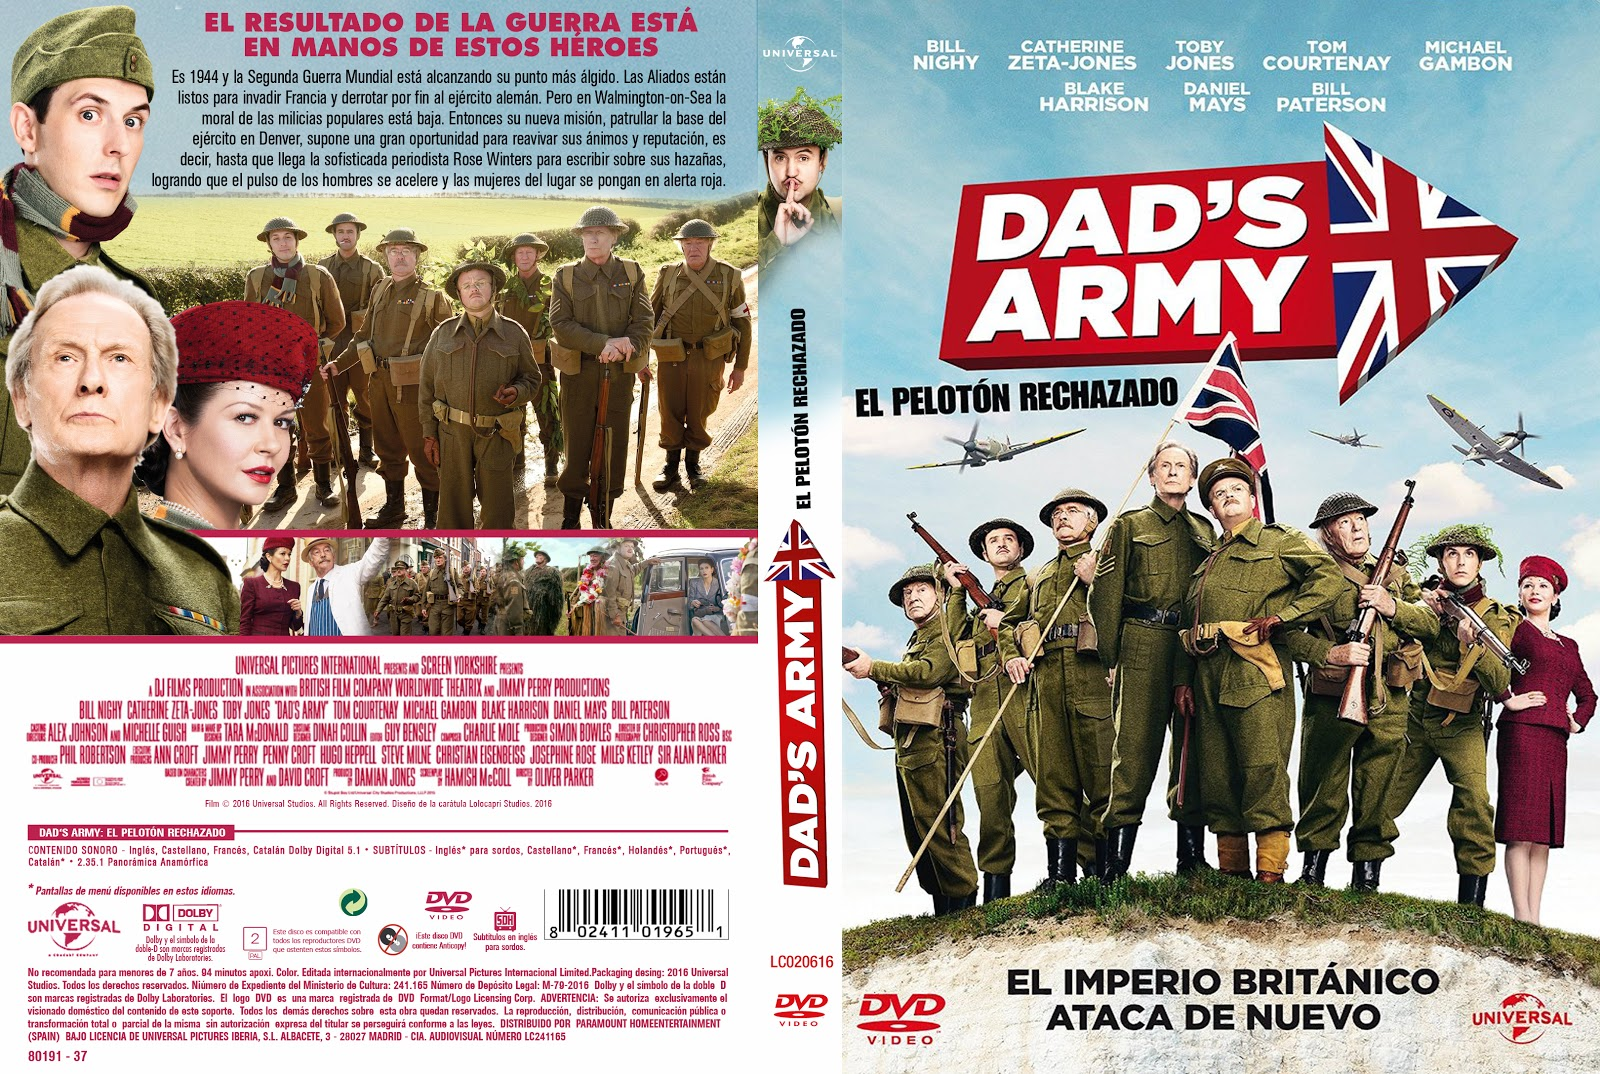 incomparable fran dads army - HD1600×1074